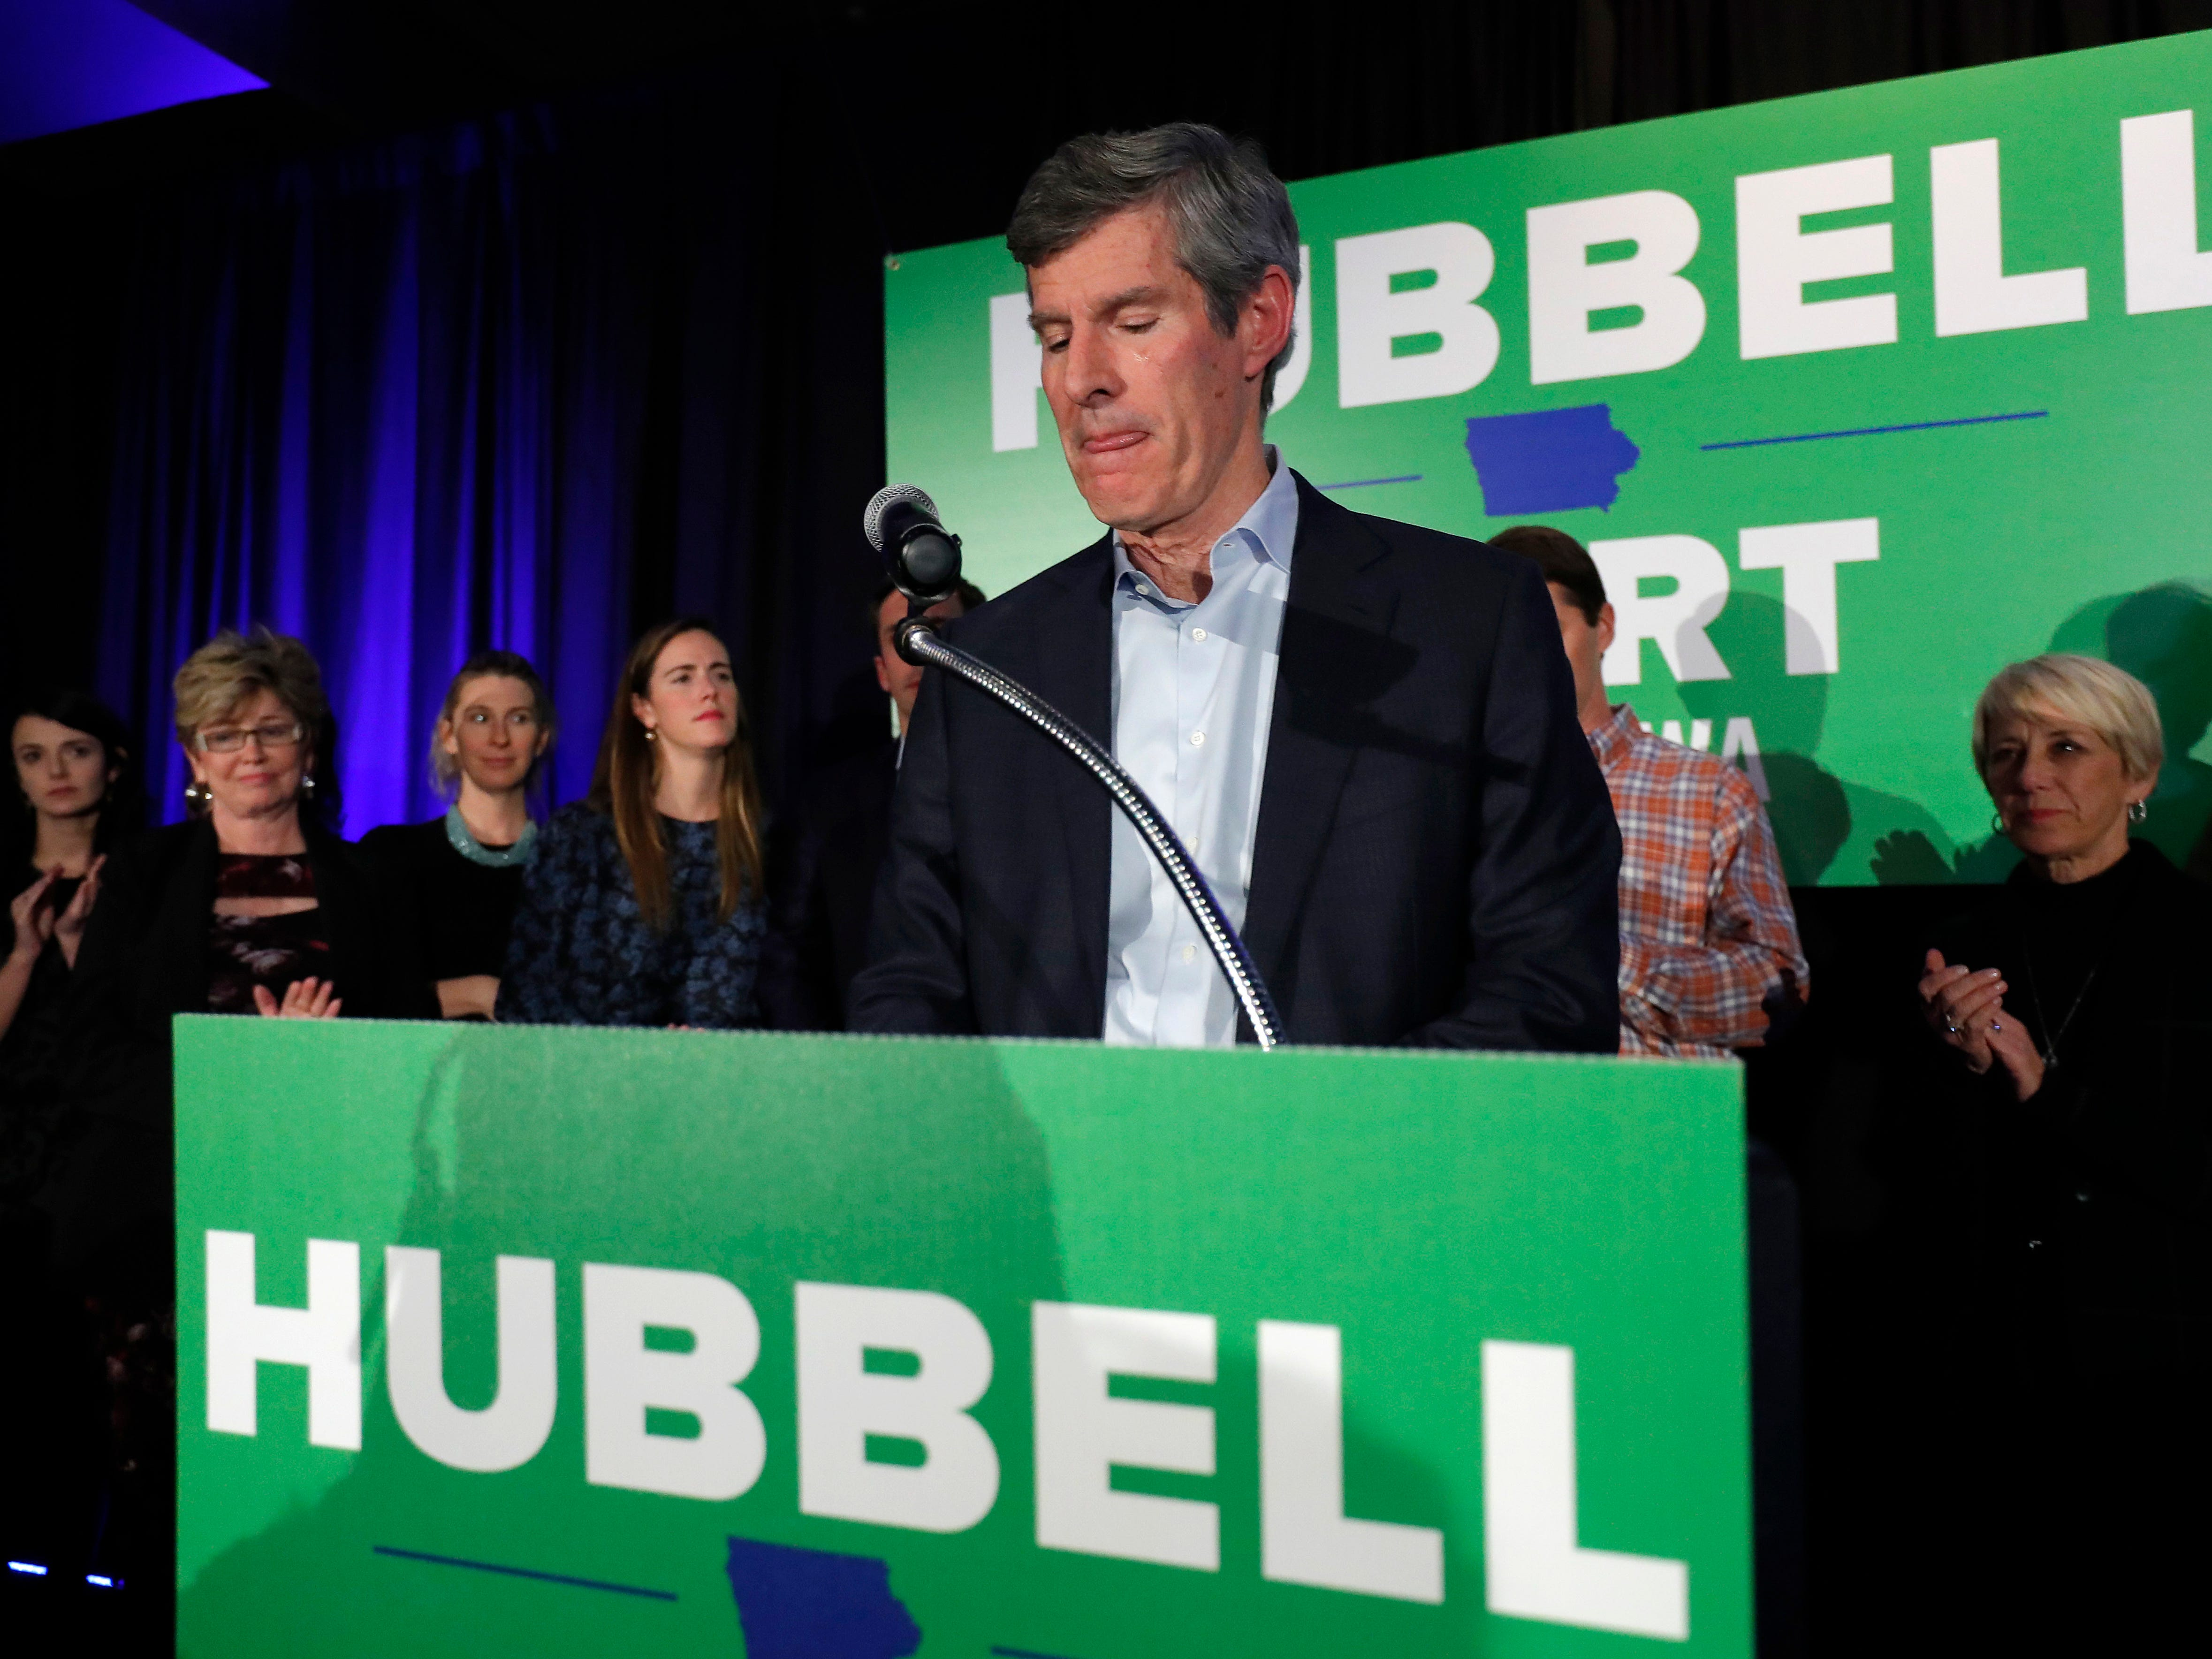 Iowa Democratic gubernatorial candidate Fred Hubbell gives his concession speech after losing the governor's race, Wednesday, Nov. 7, 2018, in Des Moines, Iowa.